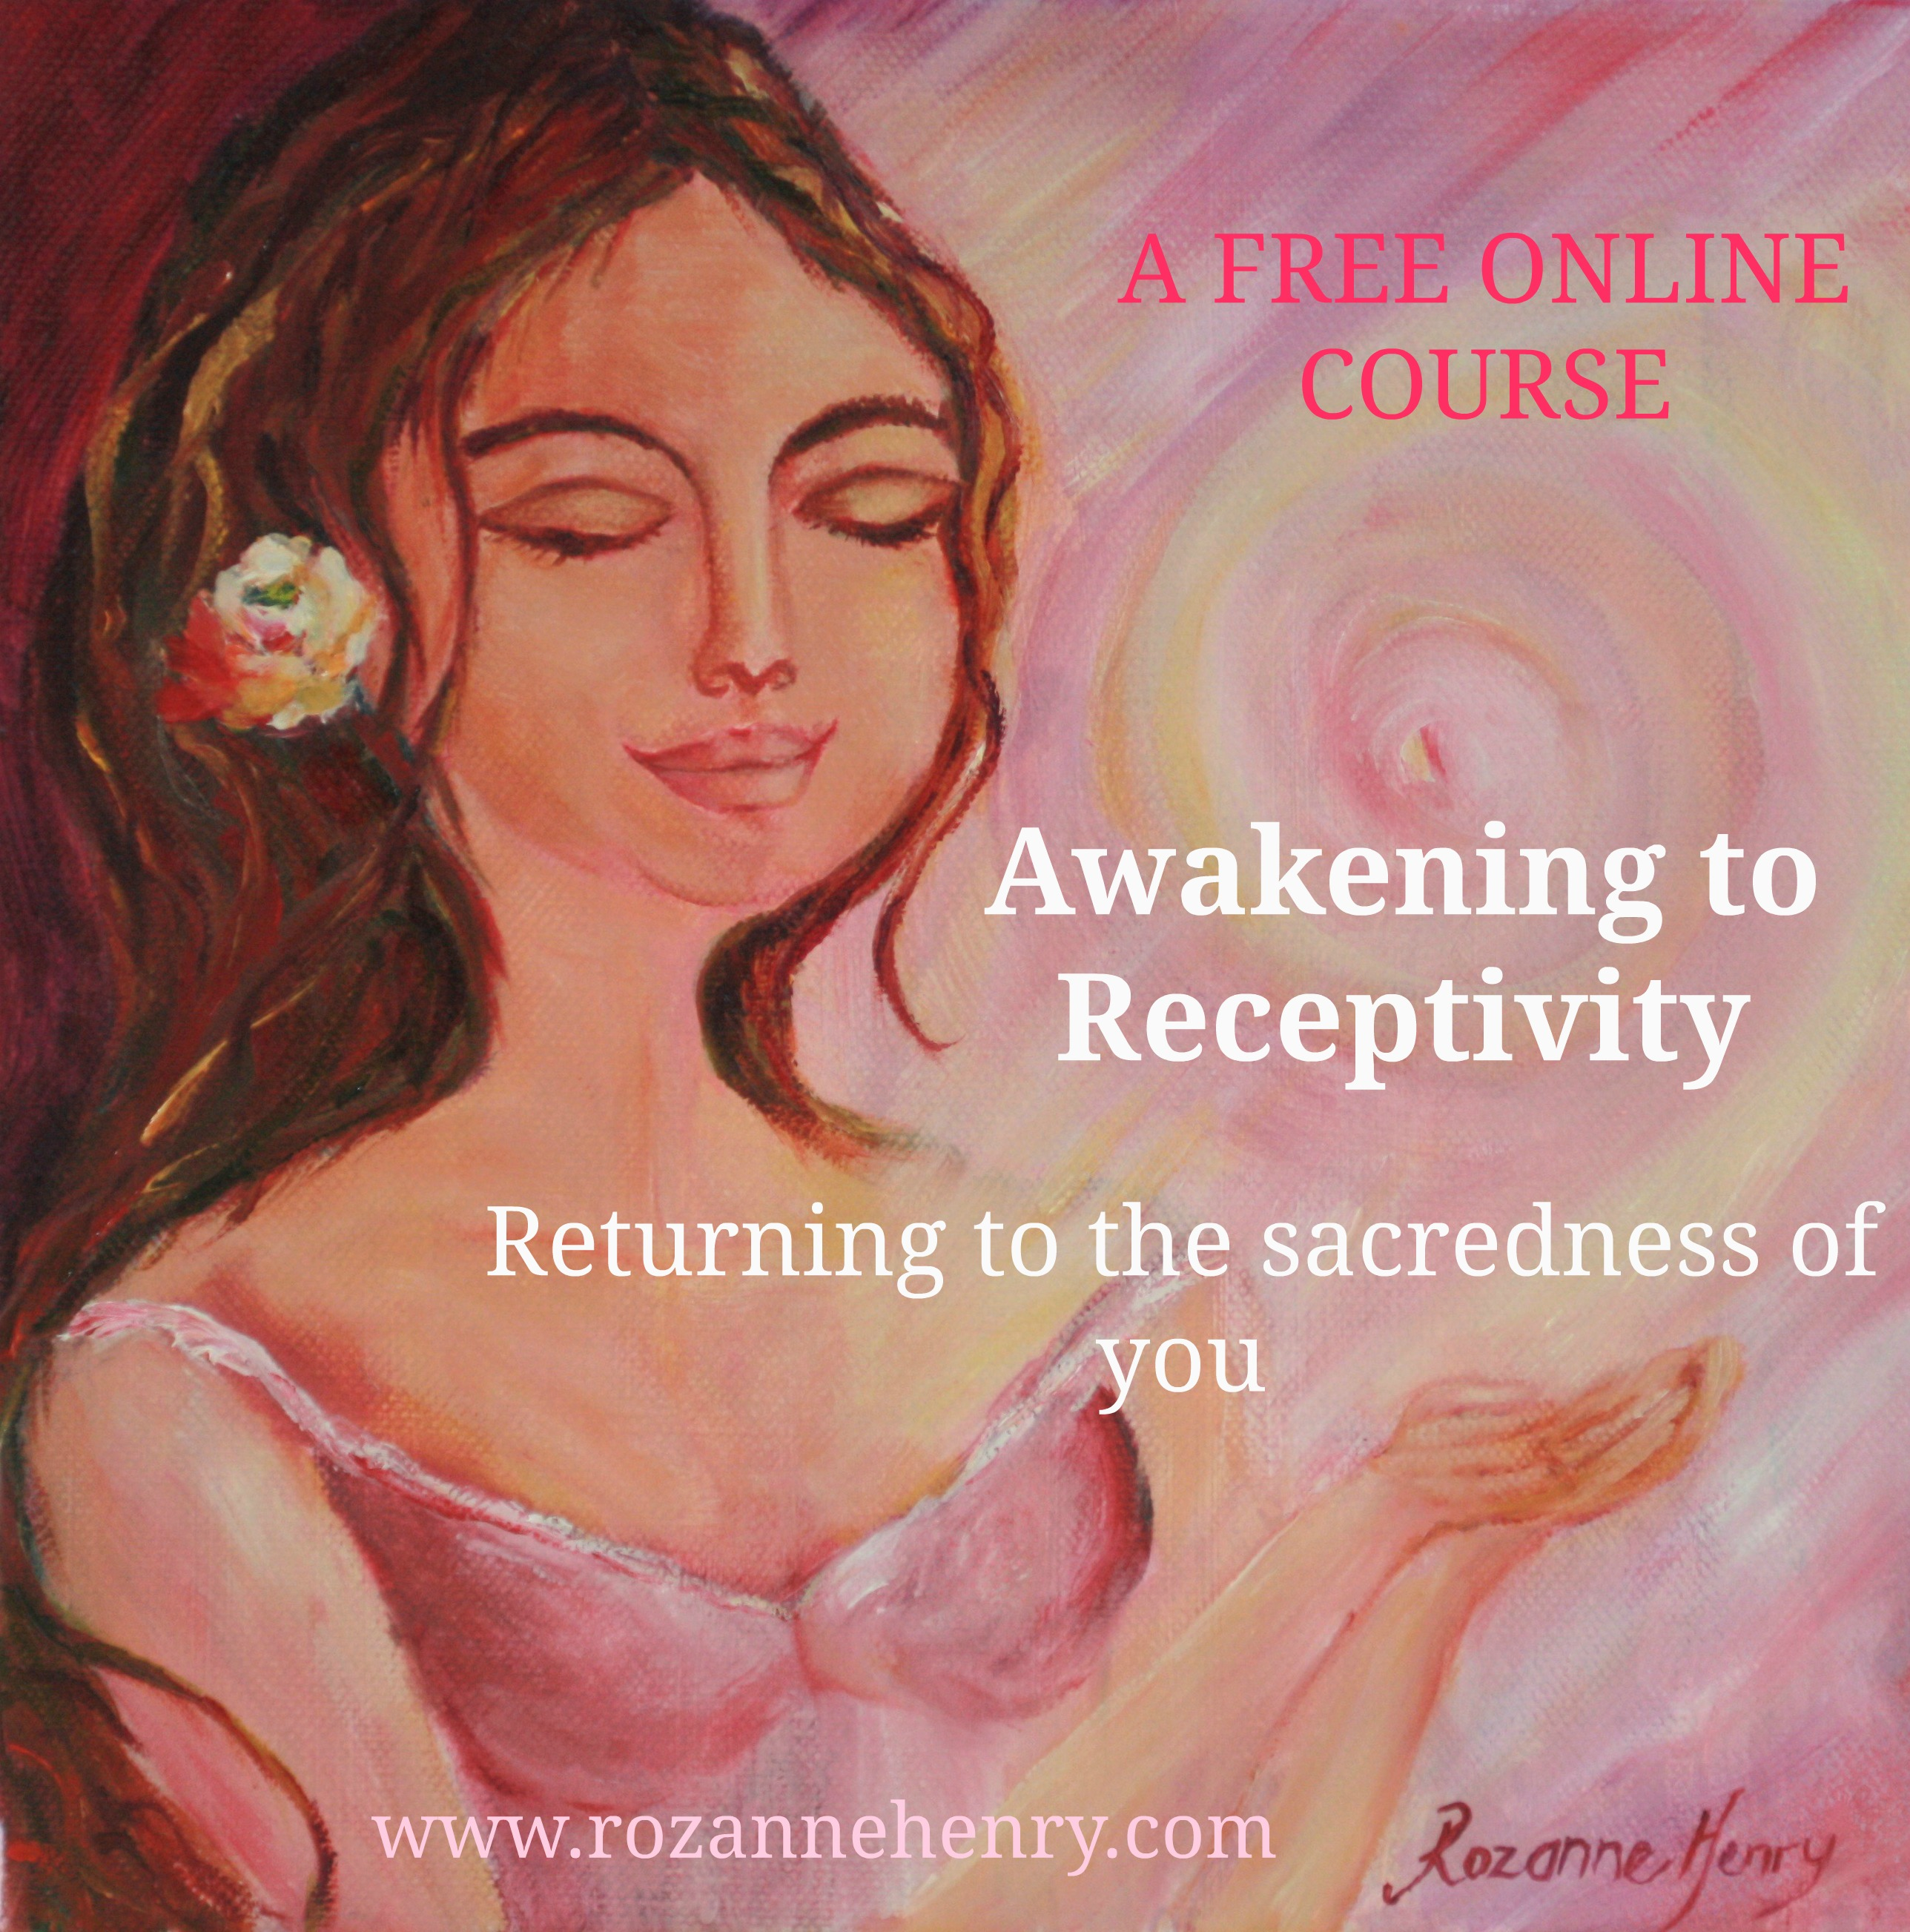 ad for free receptivity course